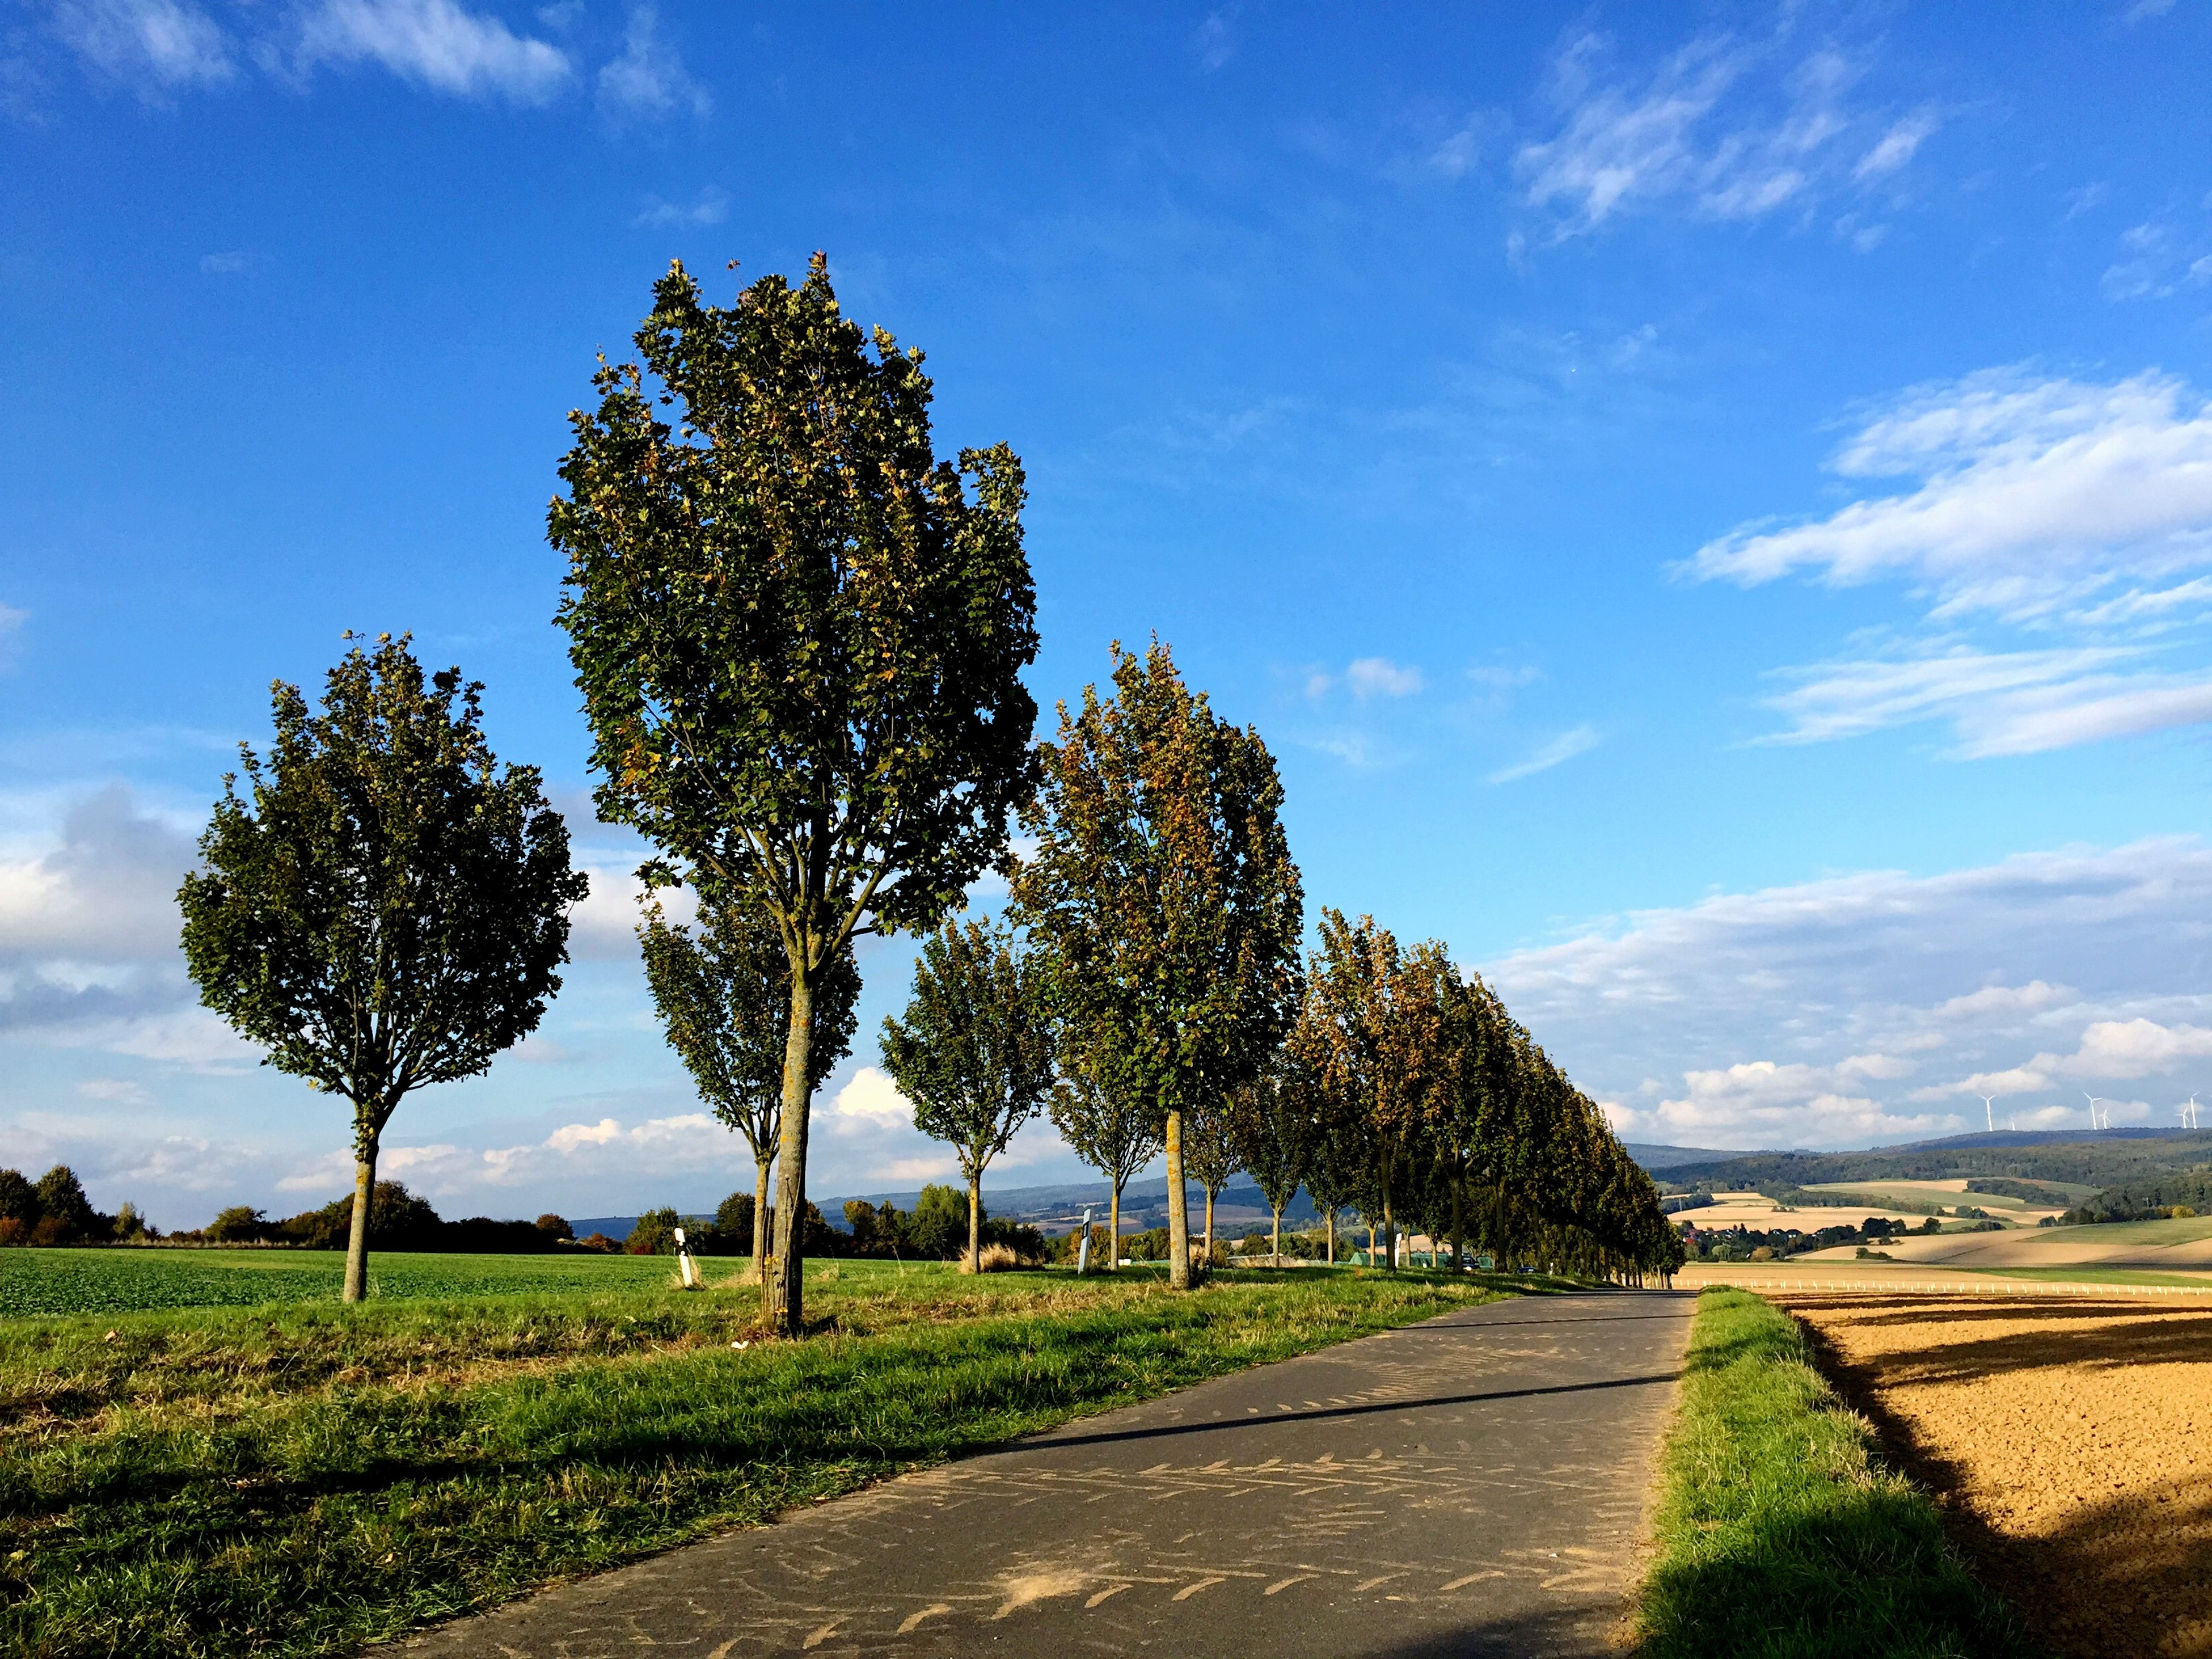 tree, road, the way forward, transportation, tranquil scene, nature, day, scenics, landscape, tranquility, sky, outdoors, field, beauty in nature, no people, growth, cloud - sky, rural scene, grass